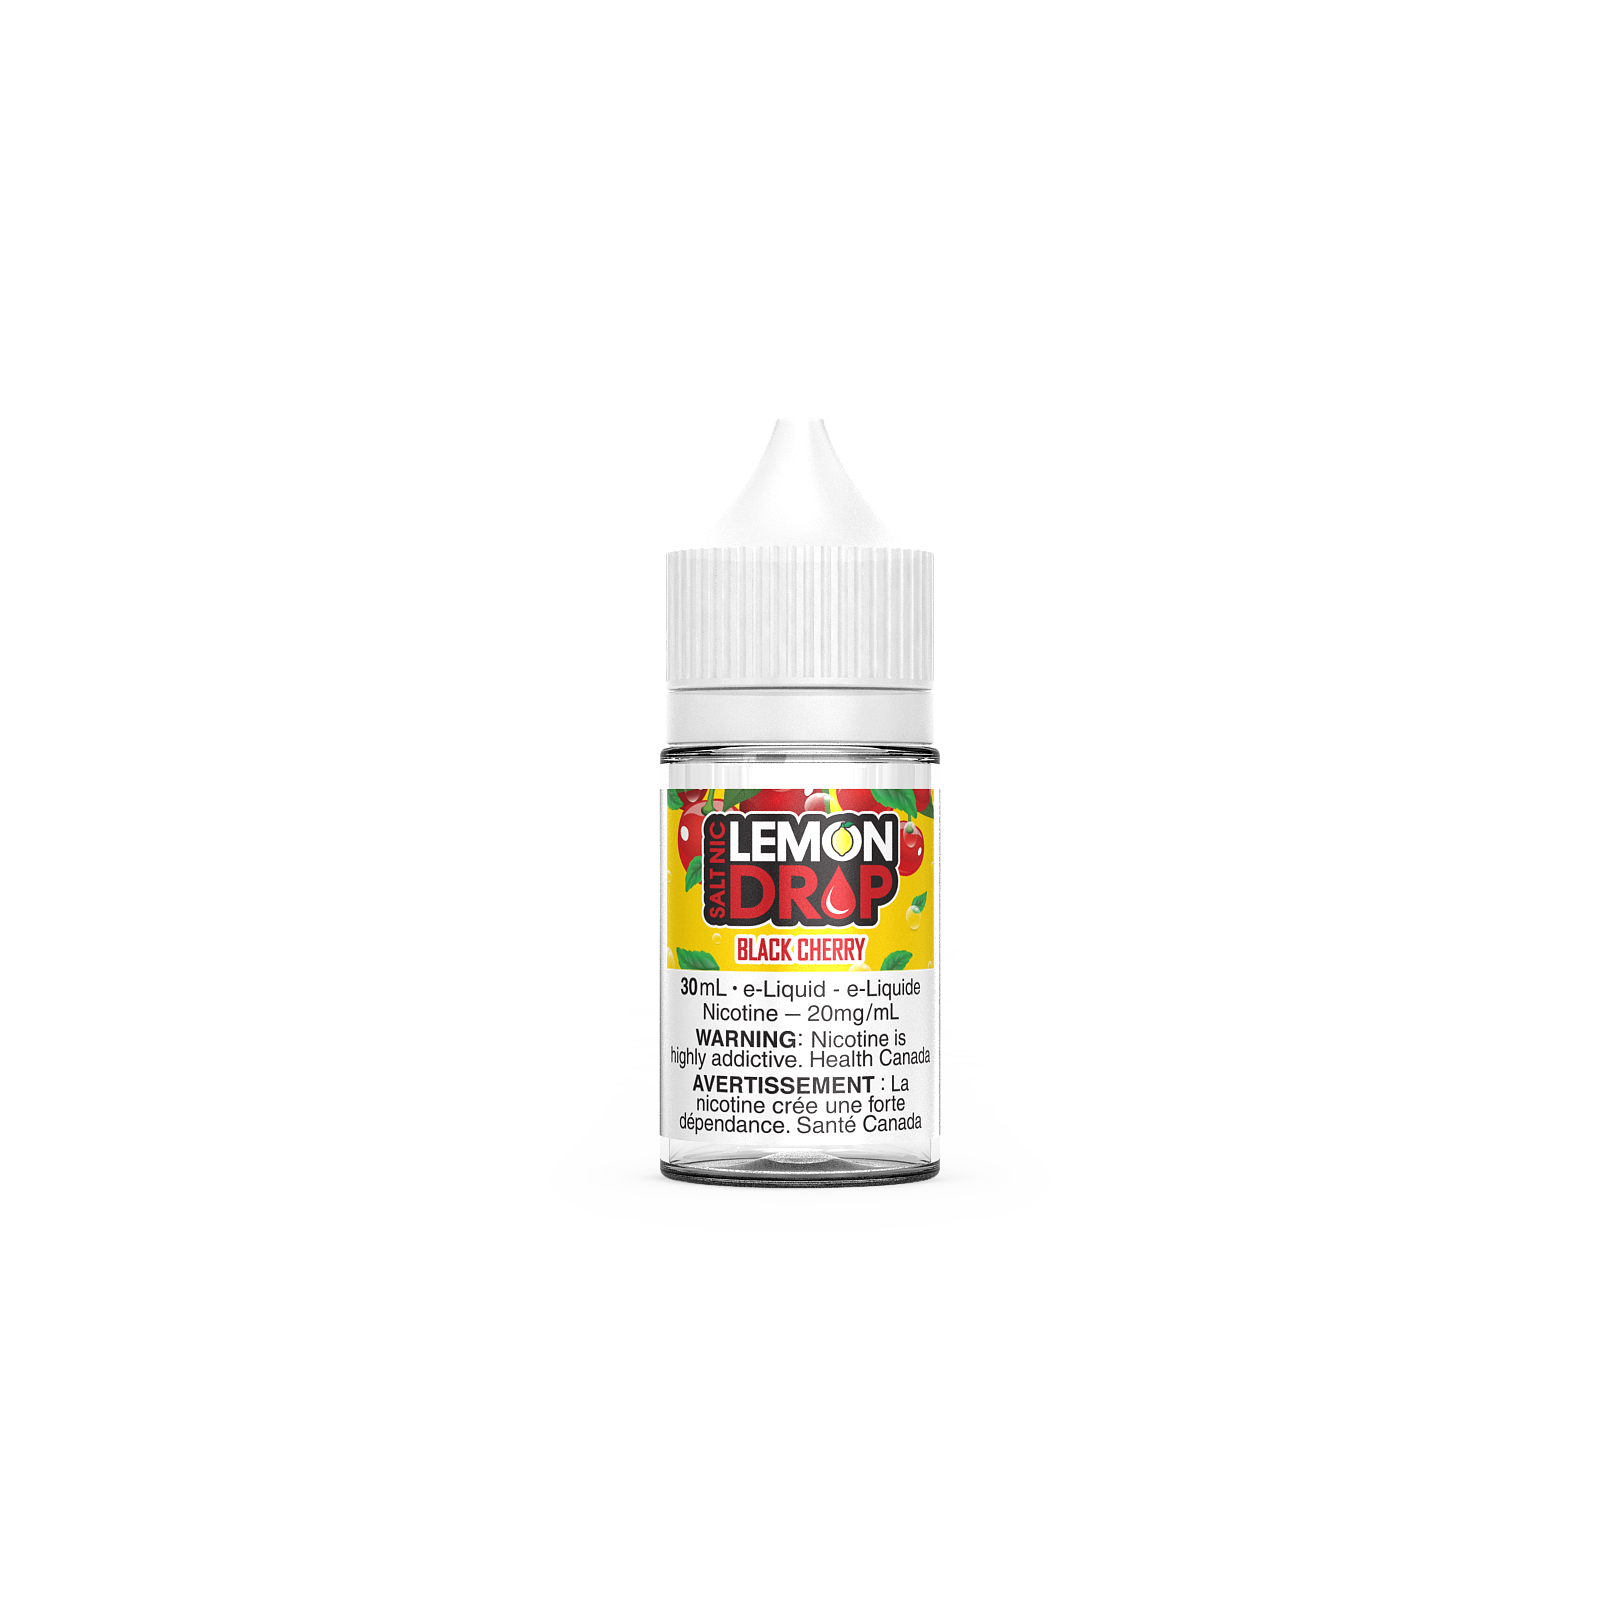 Lemon Drop Salt - Black Cherry 30ml